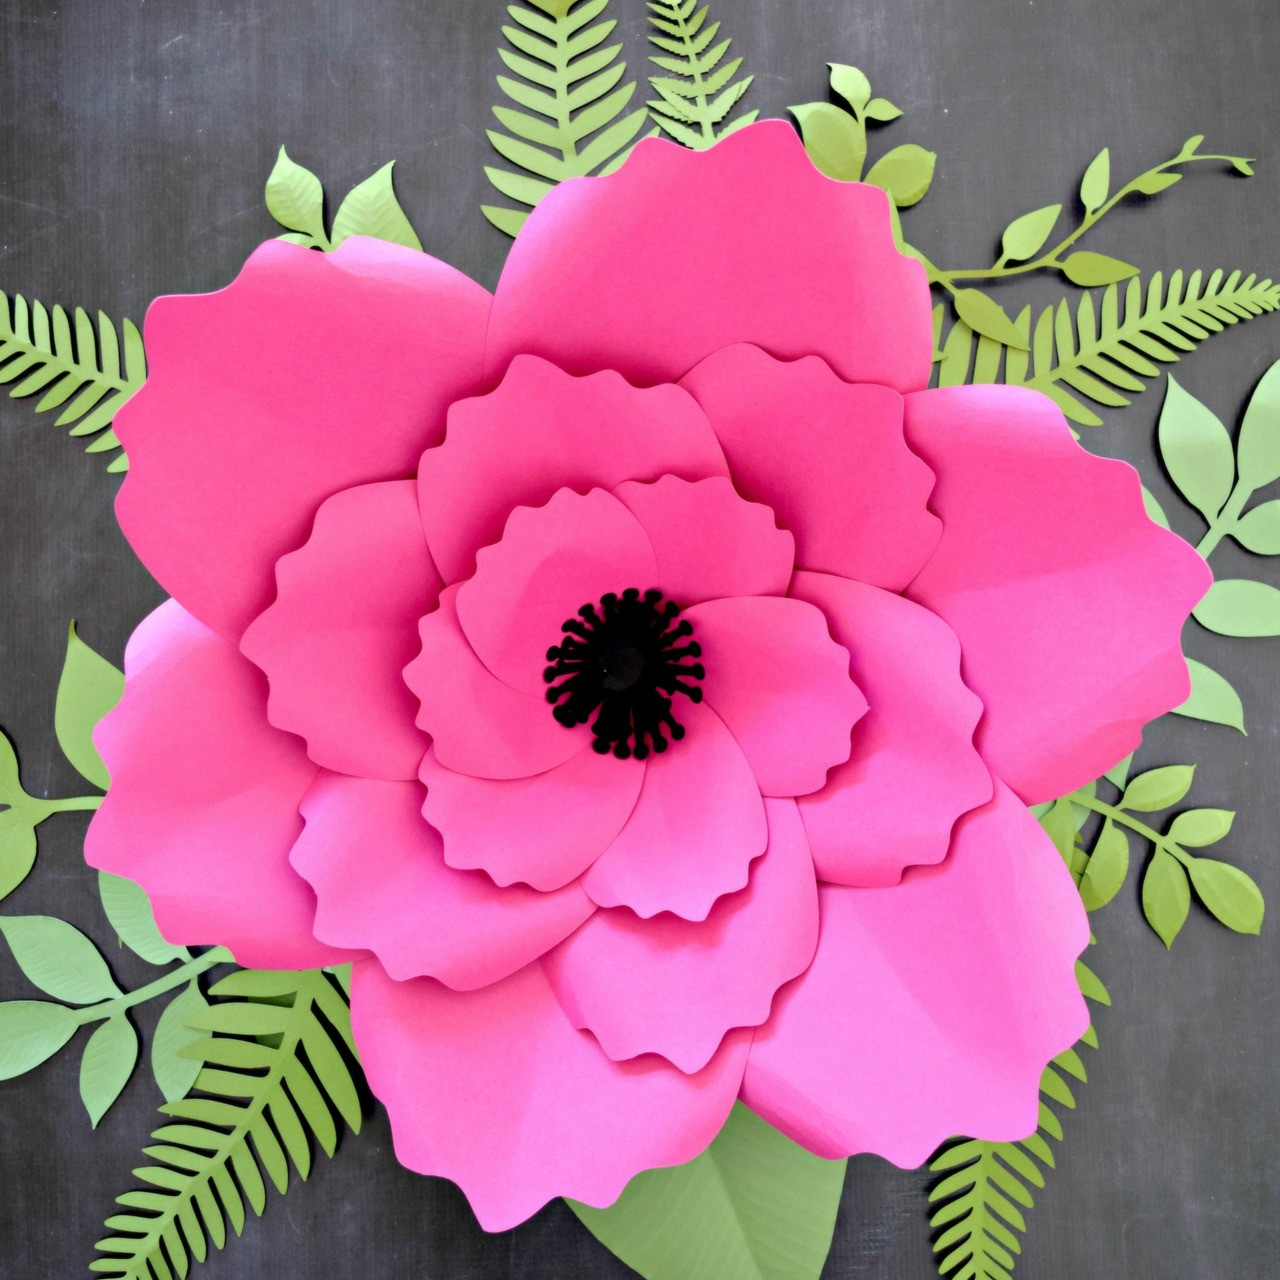 Giant Anemone Paper Flower Template With Poppy Center Catching